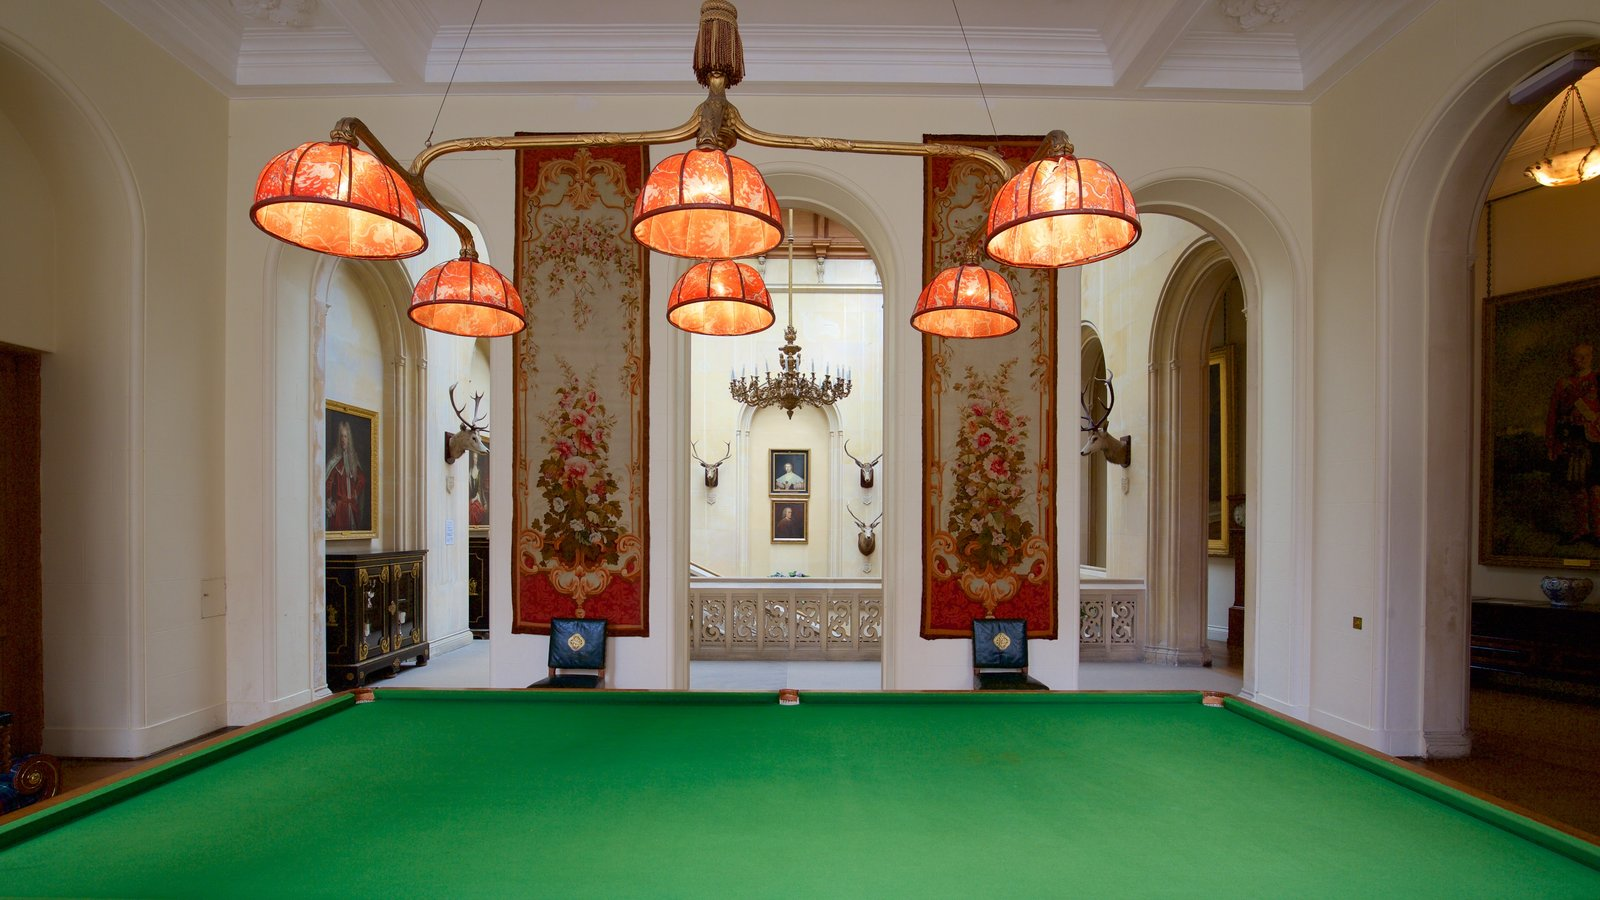 Dunrobin Castle featuring heritage elements, interior views and chateau or palace